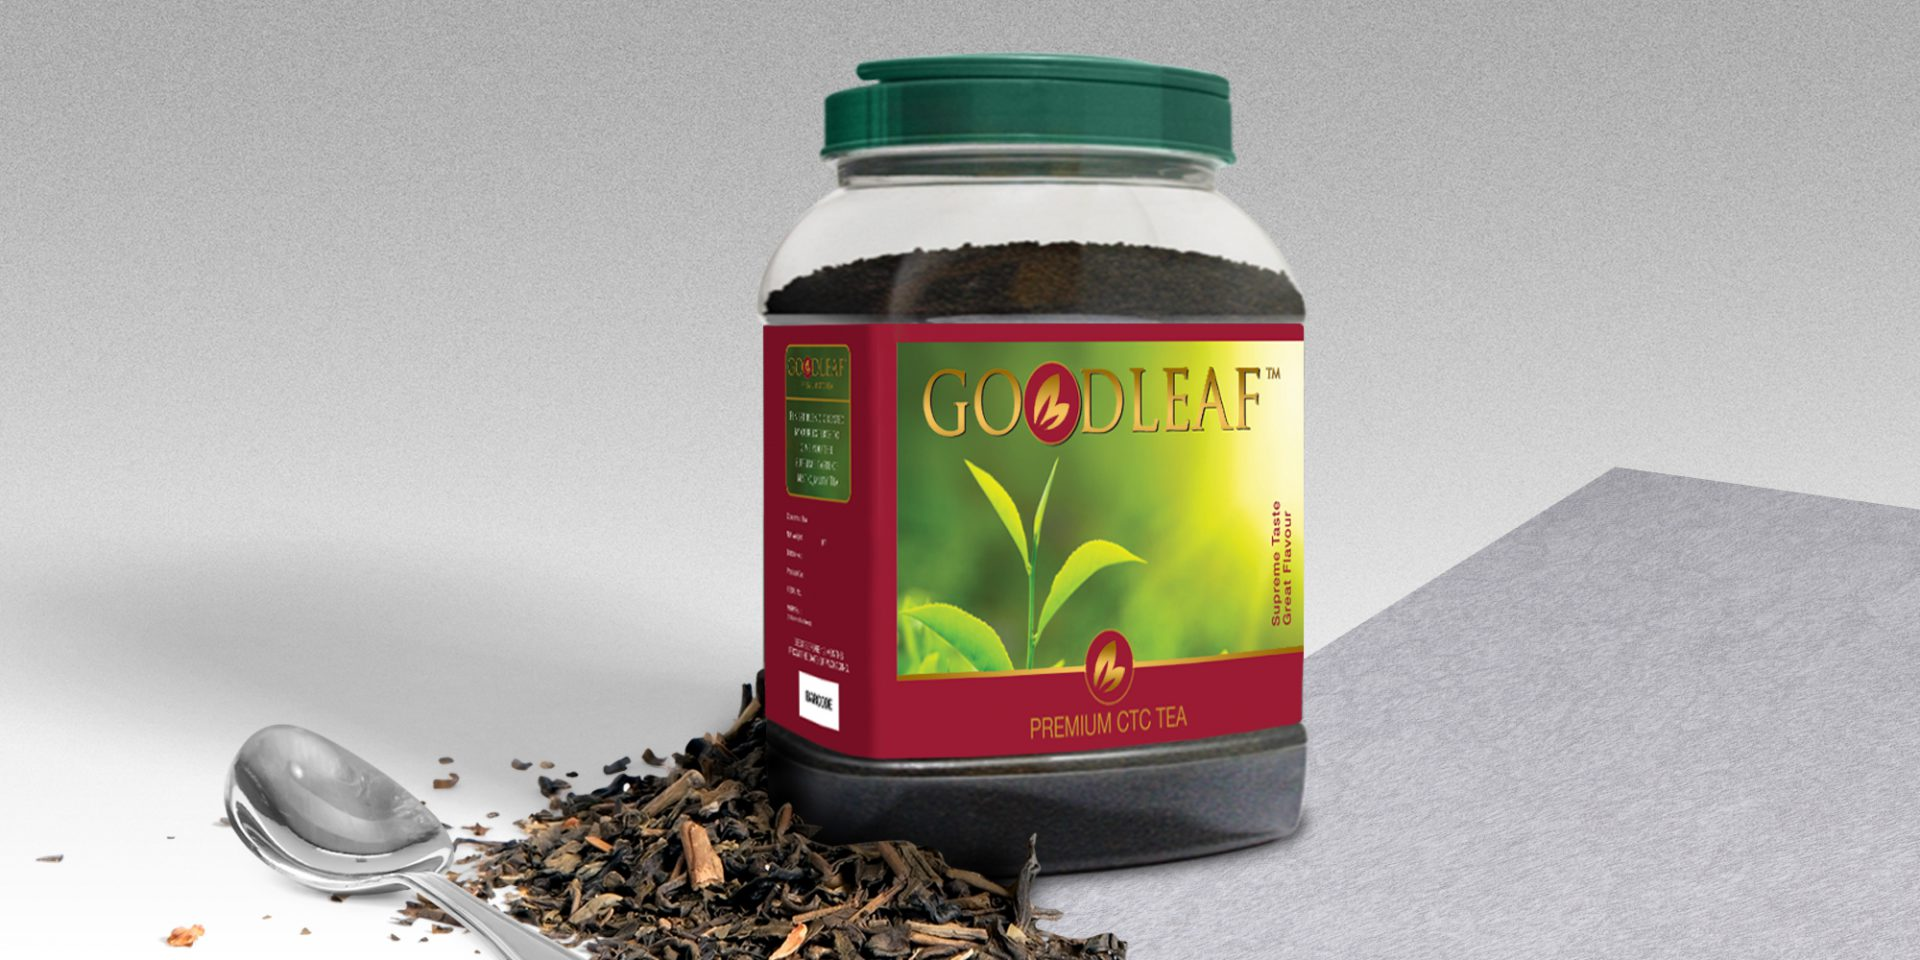 Goodleaf Tea Jar Label Design